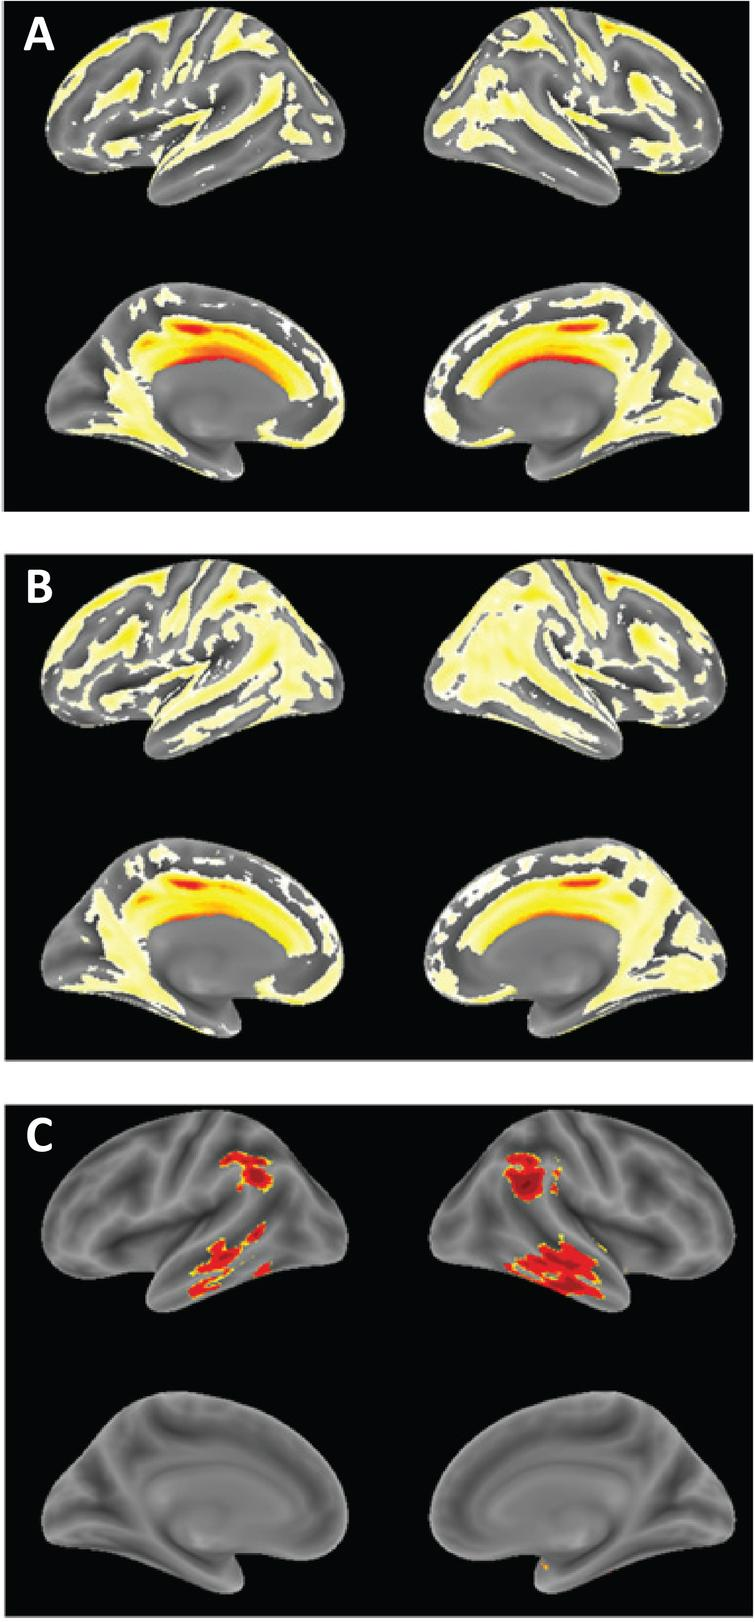 Voxel-based morphometric comparison showing regions of greater atrophy in patients receiving LMTM as monotherapy [N=157] (A) or as add-on to approved treatments for AD [N=610], (B) in TRx-237-005 compared with elderly controls [N=244] from the ongoing Aberdeen birth cohort studies [23, 26], controlled for age, sex and total intracranial volume of each individual. (C) Voxel-based morphometric comparison of monotherapy and add-on patients in TRx-237-005. Data are displayed at a significance threshold corrected for family-wise error at the whole brain level at p<0.05.